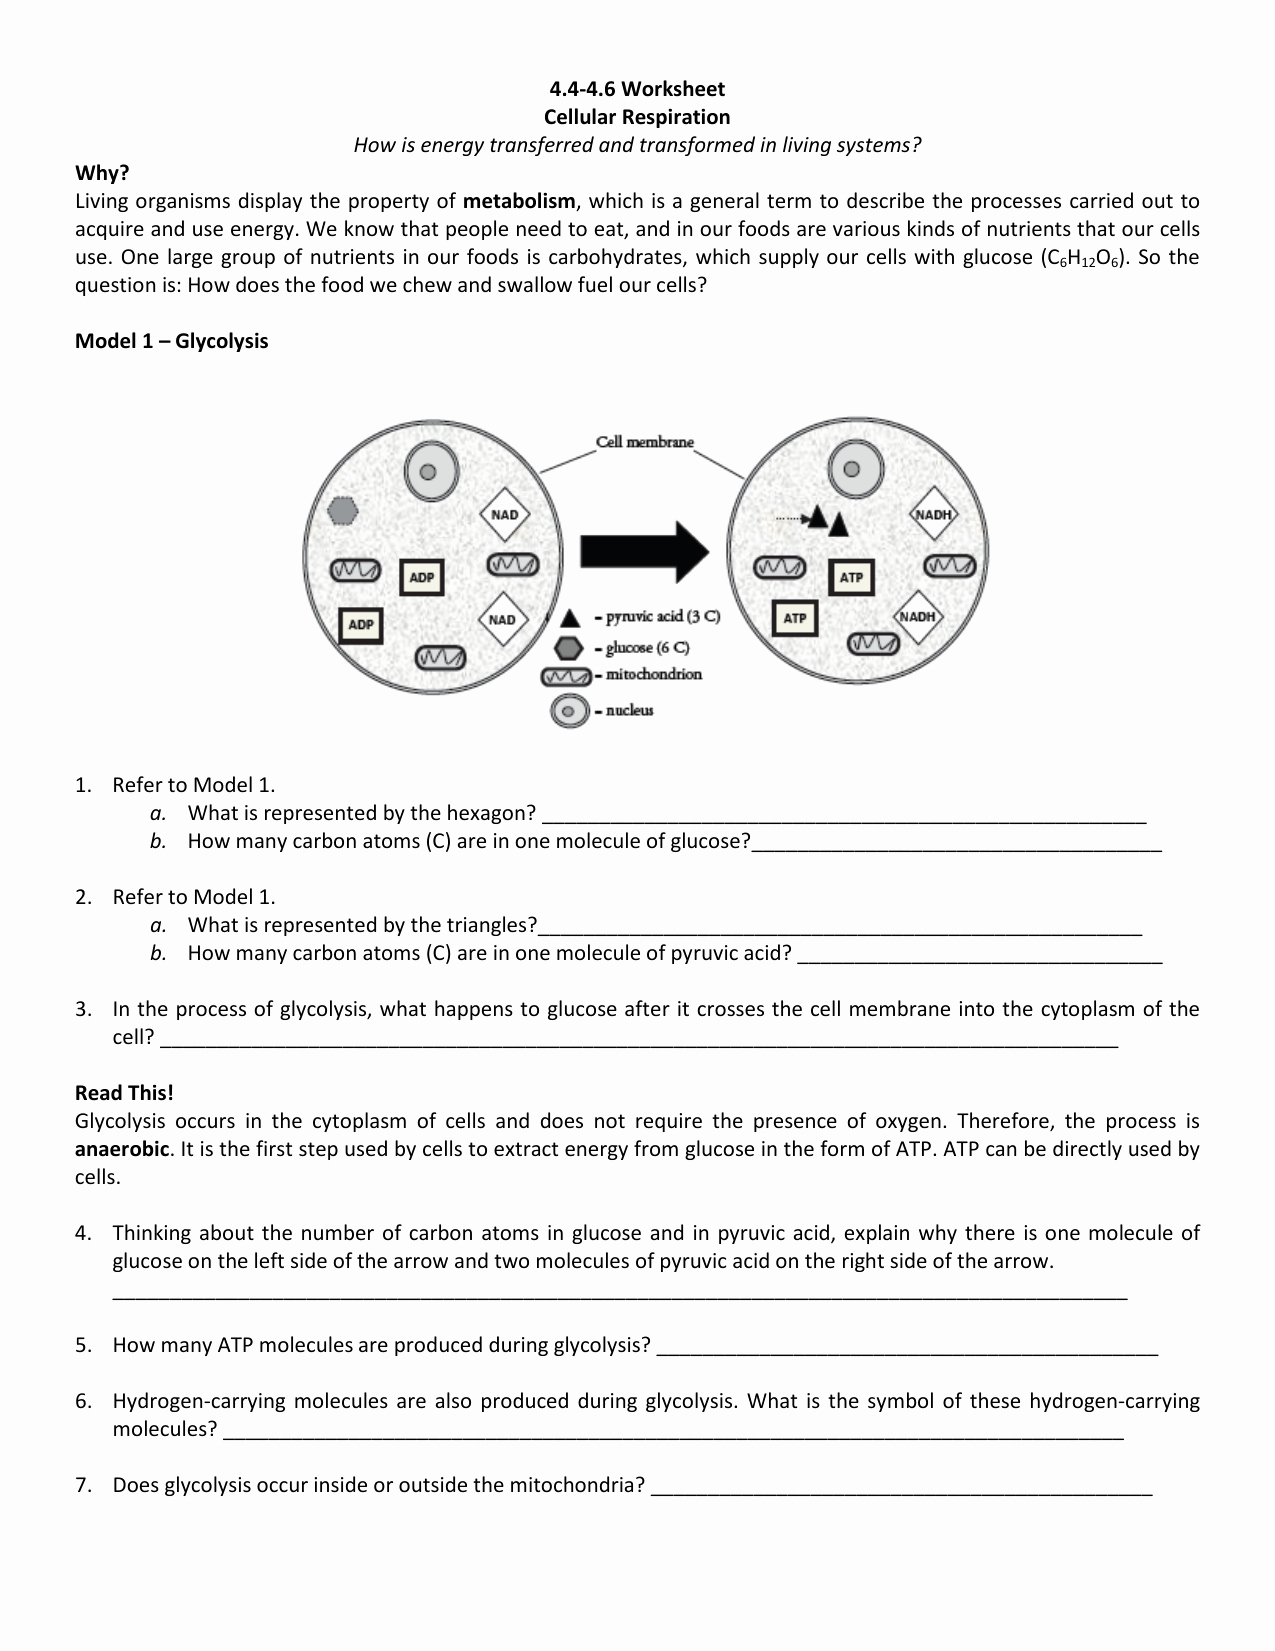 Cellular Respiration Worksheet Key Inspirational Cell Size Pogil Answers